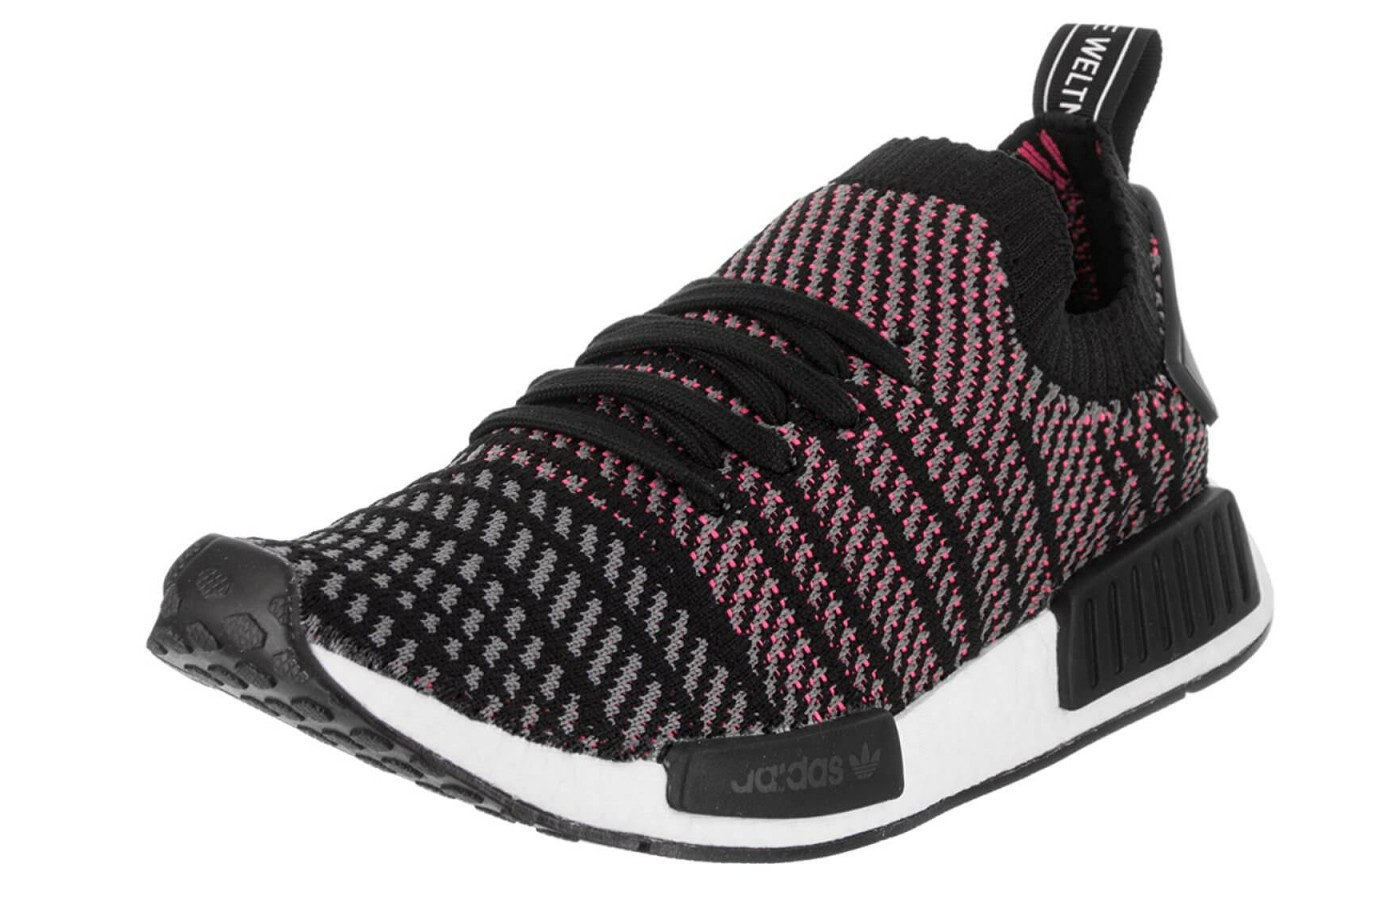 0365dfa14 The Adidas NMD R1 Stlt Primeknit features a Primeknit upper ...